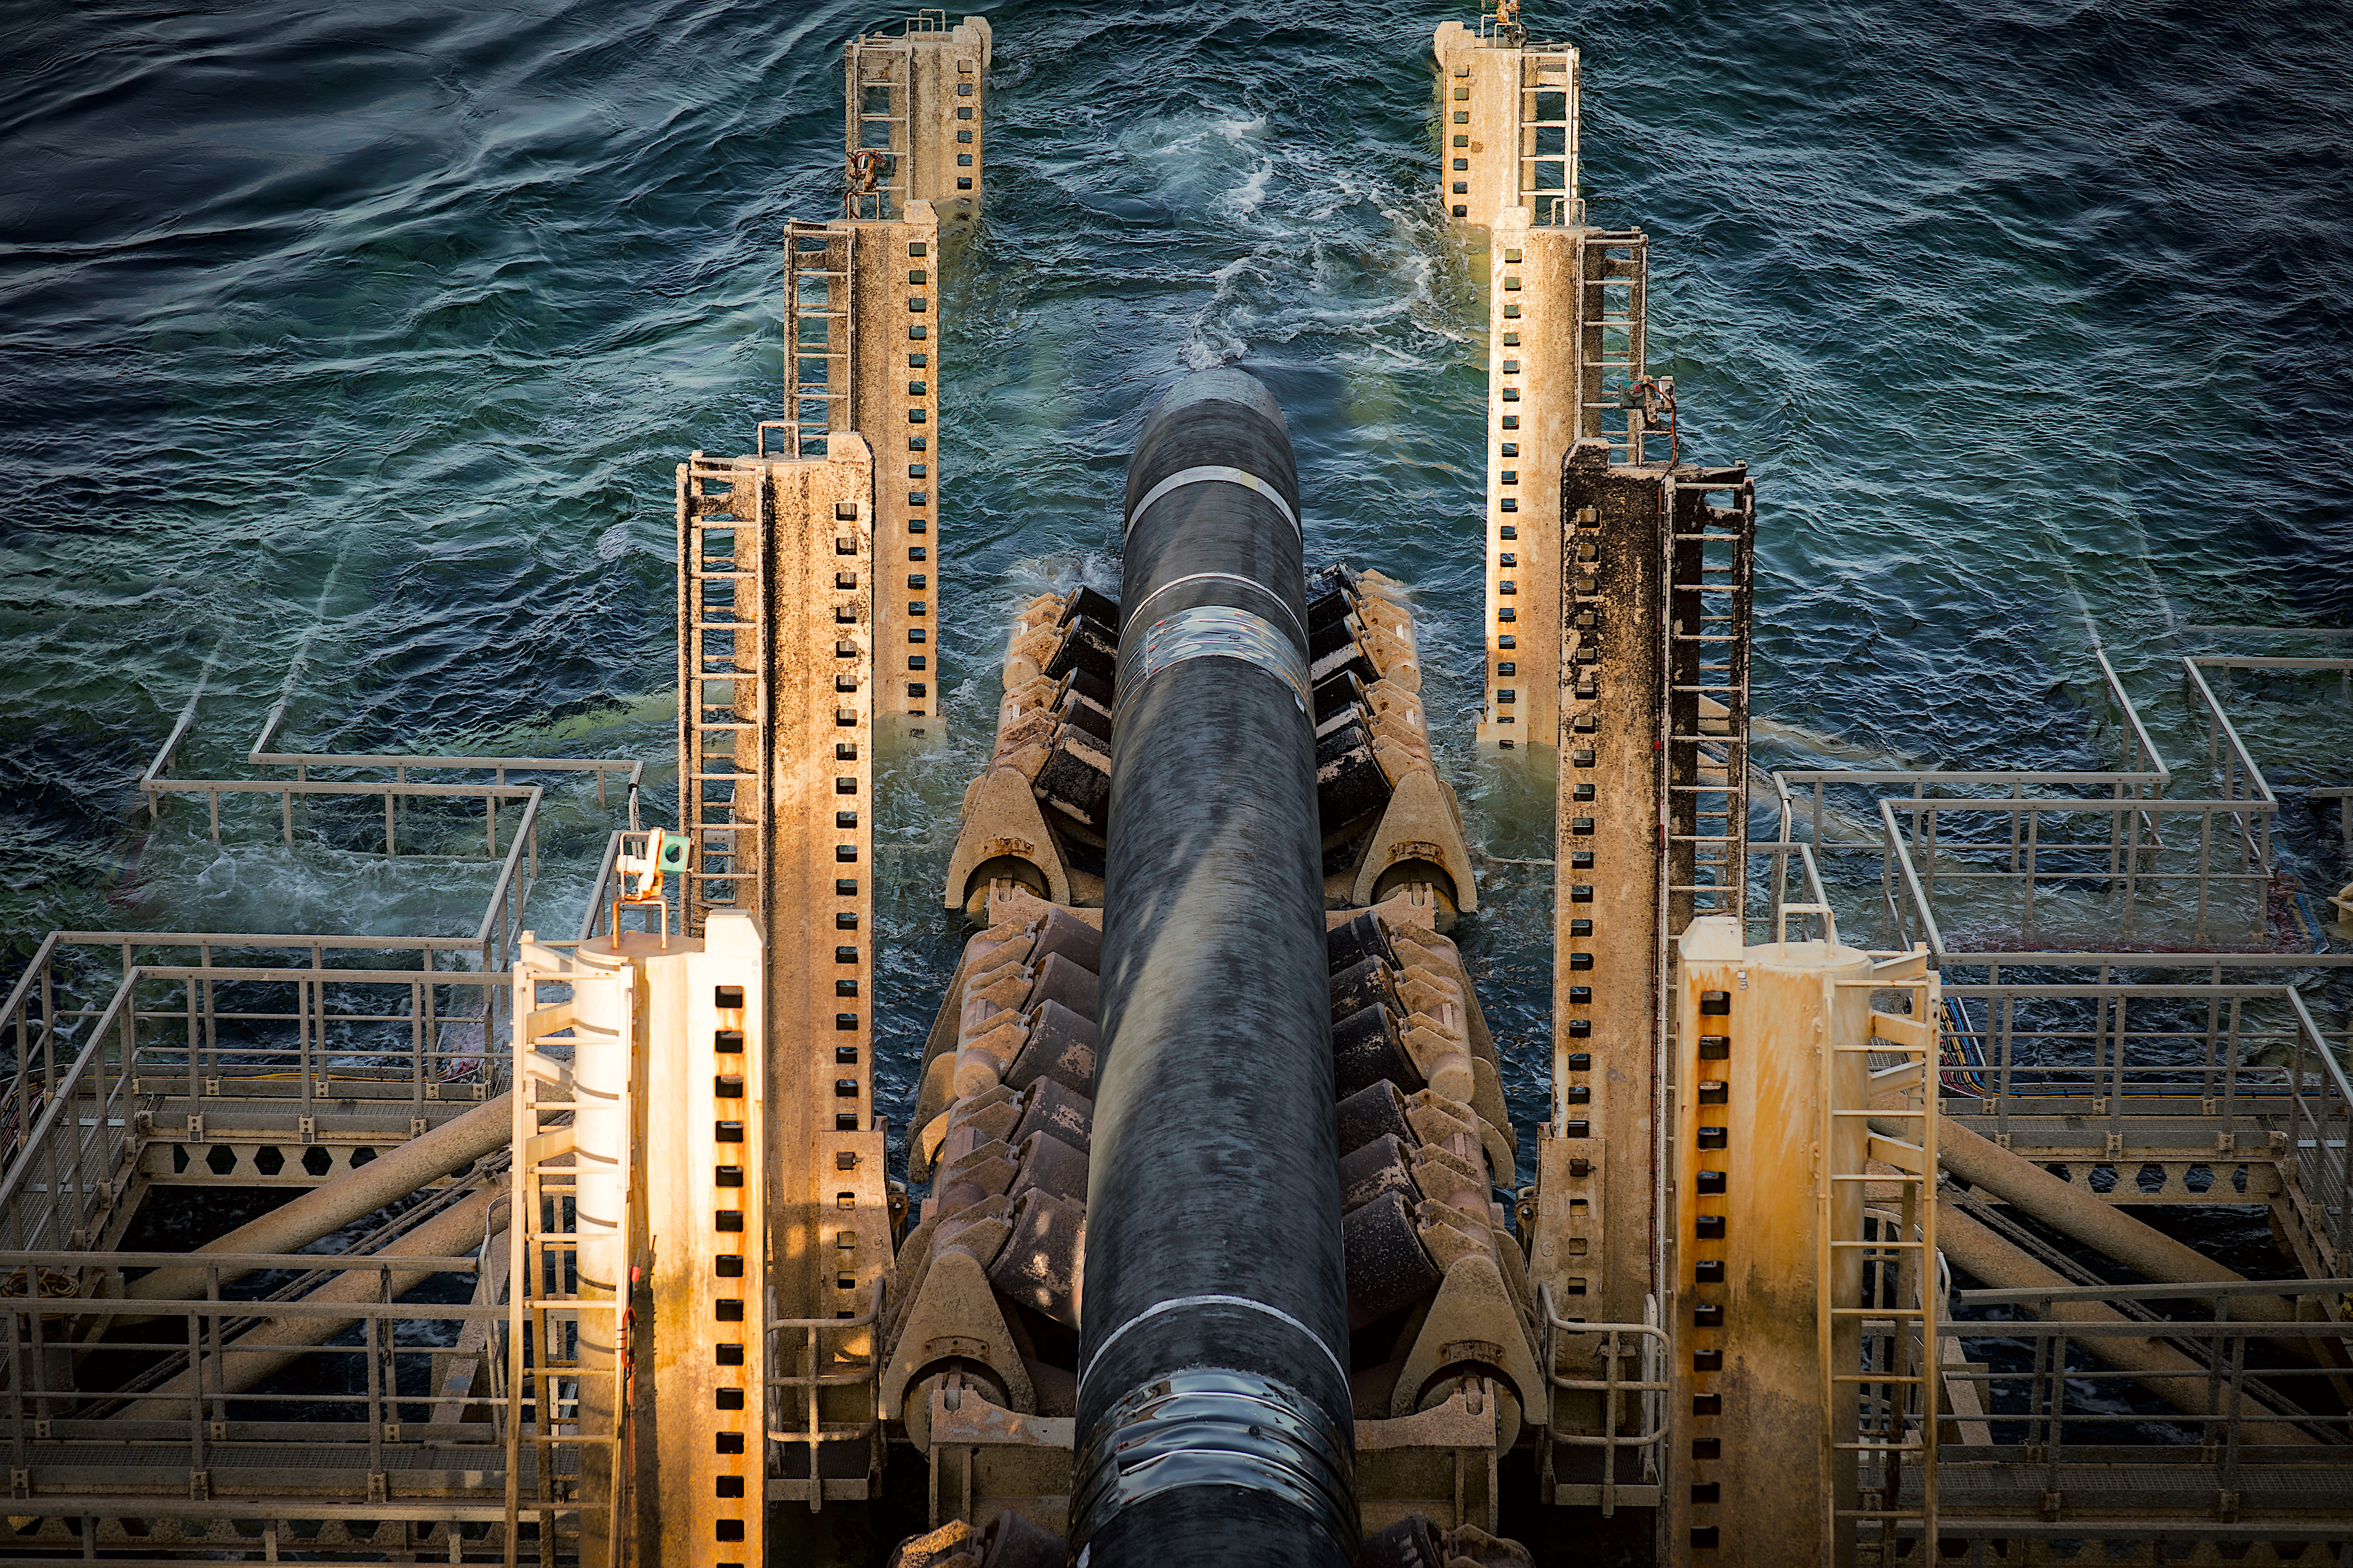 [Feature] Mustard gas and cod: Last chance to halt Nord Stream 2?